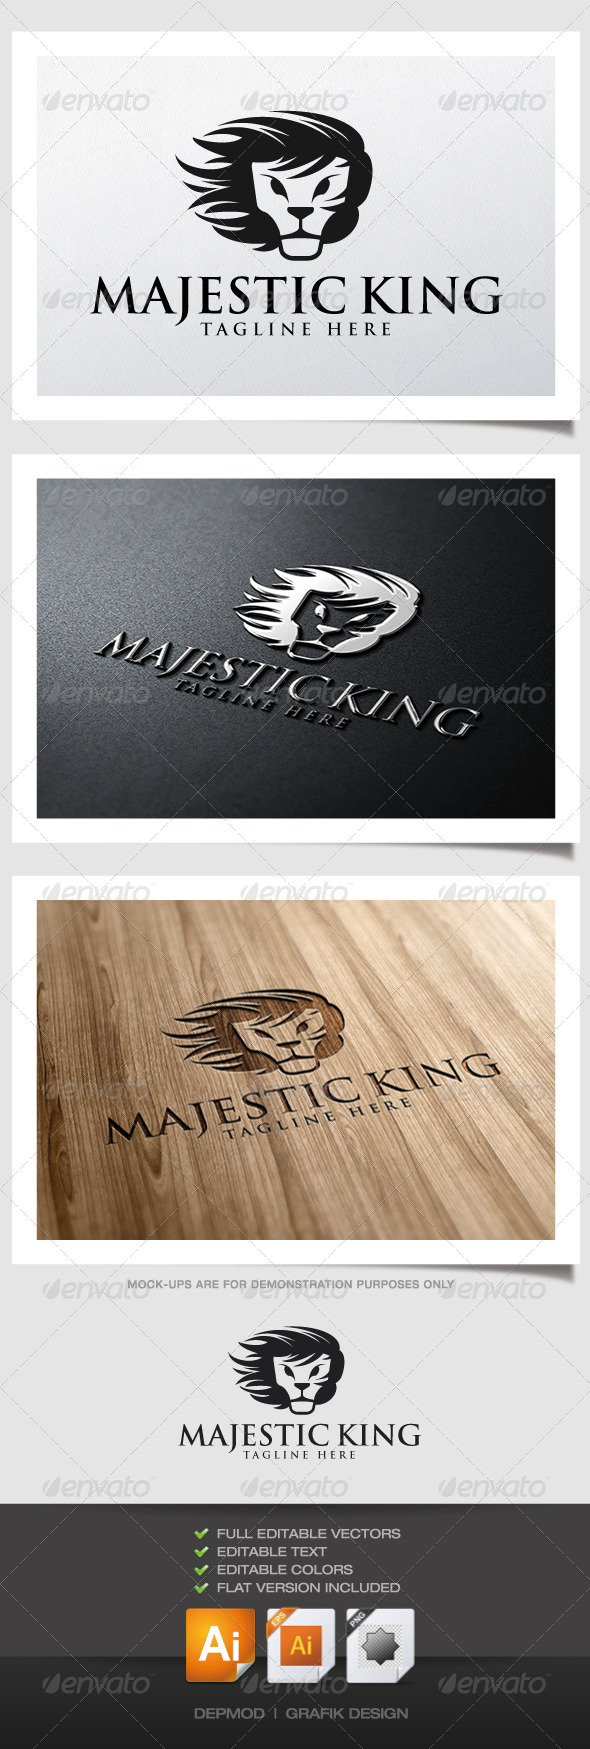 GraphicRiver Majestic King Logo 4870500